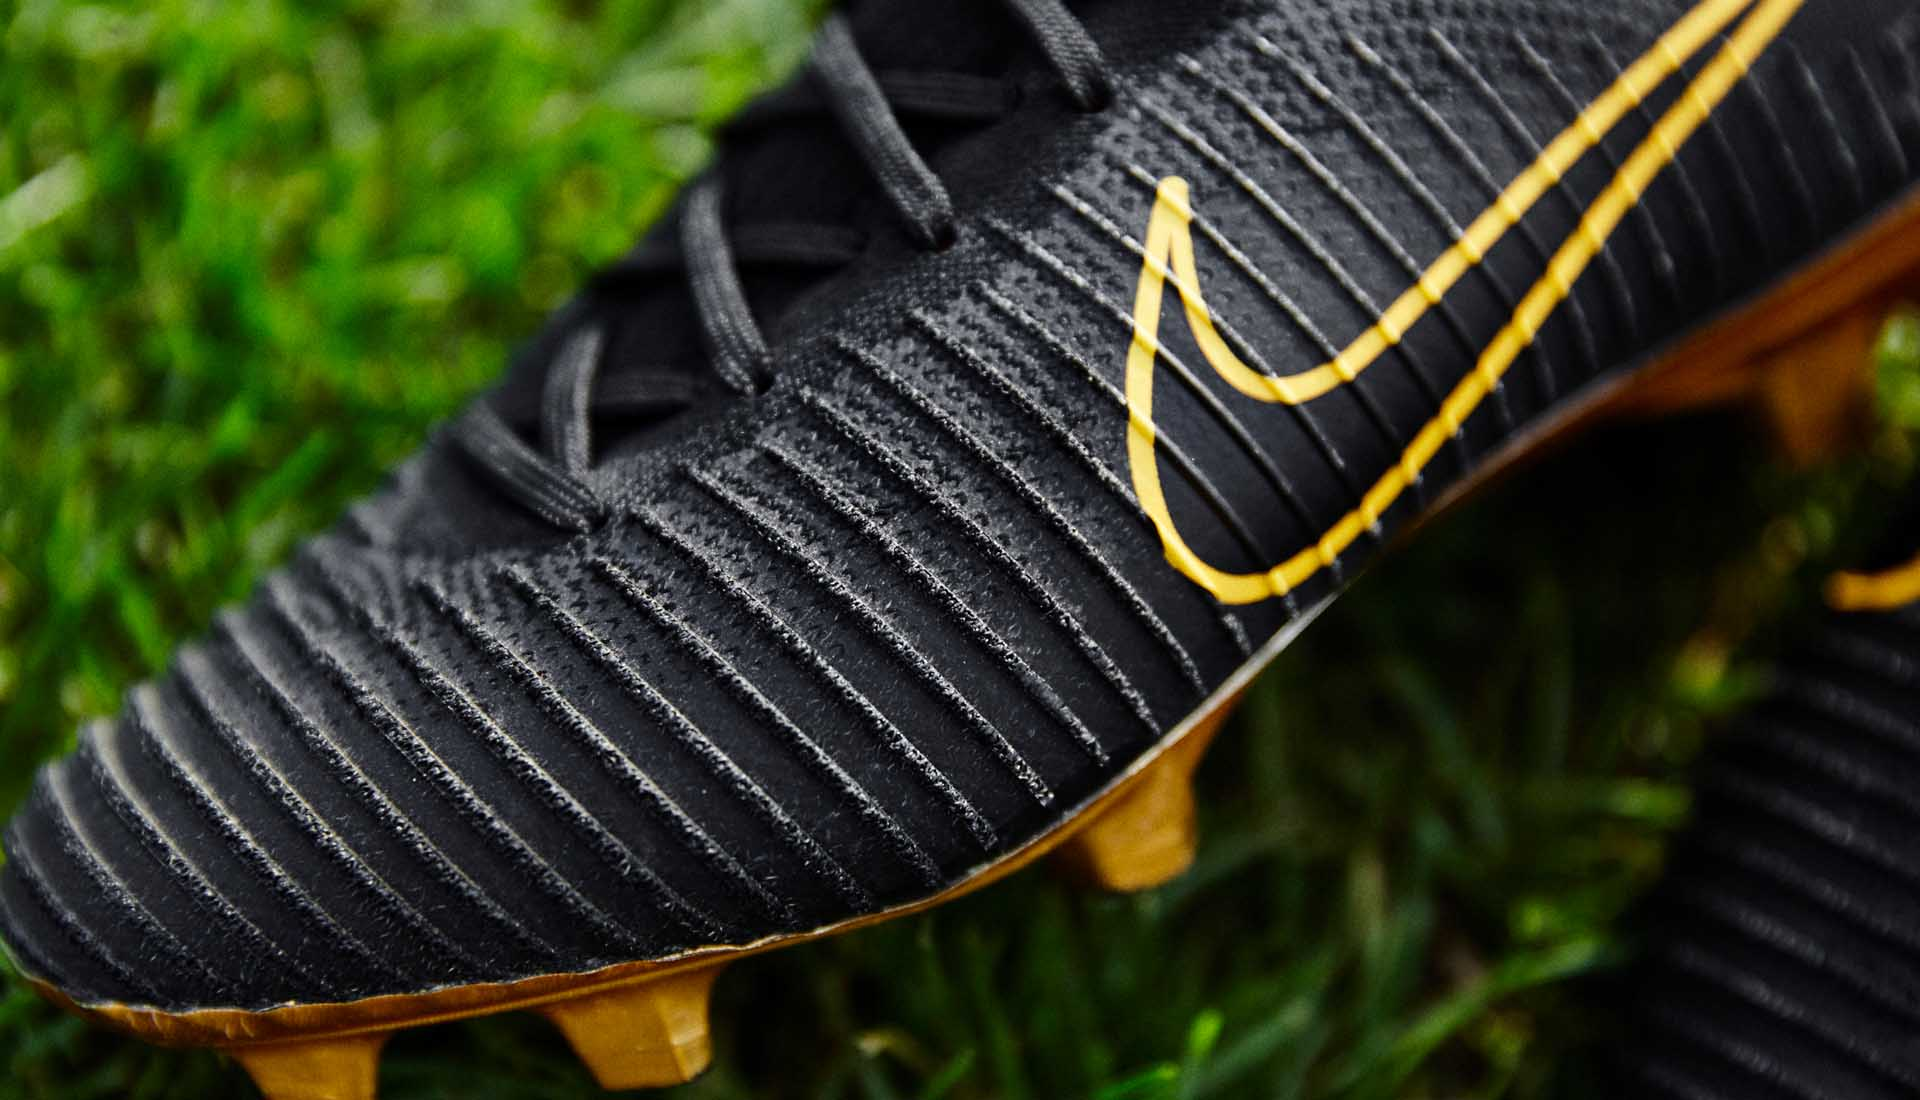 7c130ccc2f0 Nike Launch The Mercurial Vapor Flyknit Ultra - SoccerBible